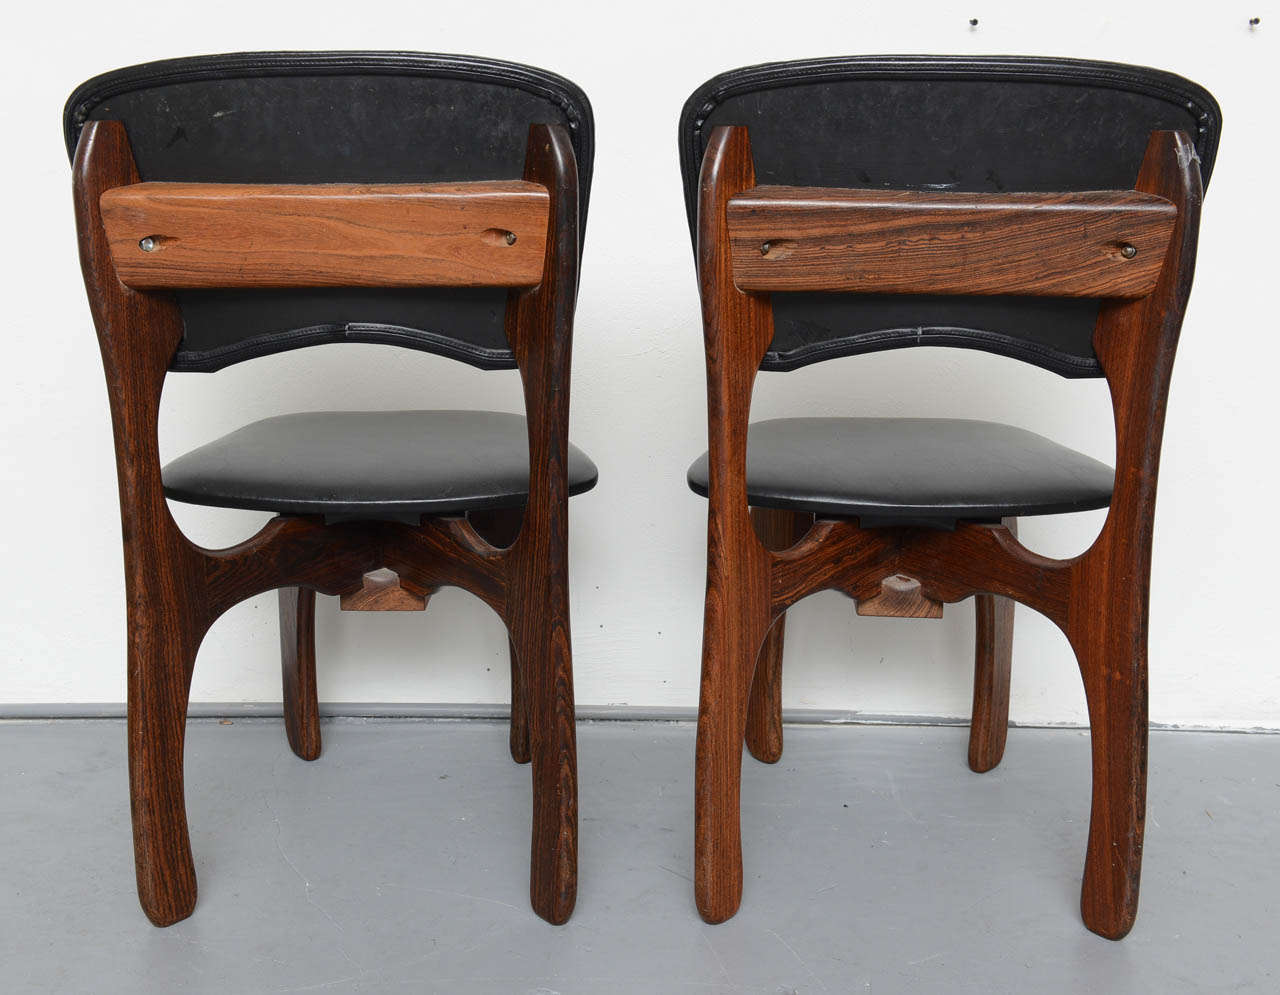 1970s Rosewood Chairs by Don Shoemaker, Mexico 7